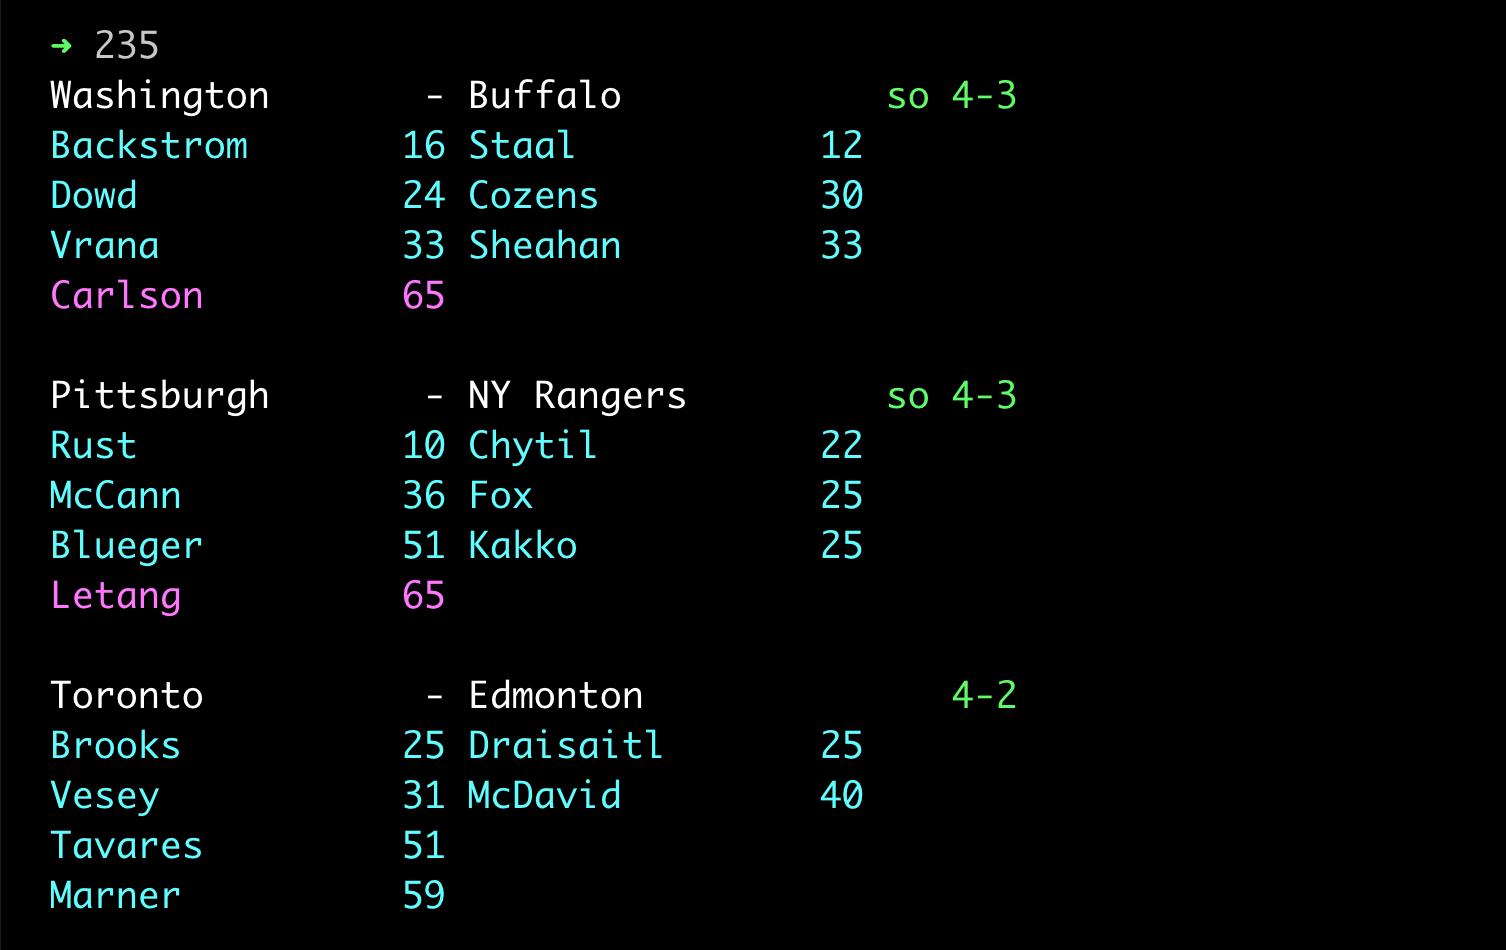 Scores of three NHL games in varying colors indicating goals and state of match